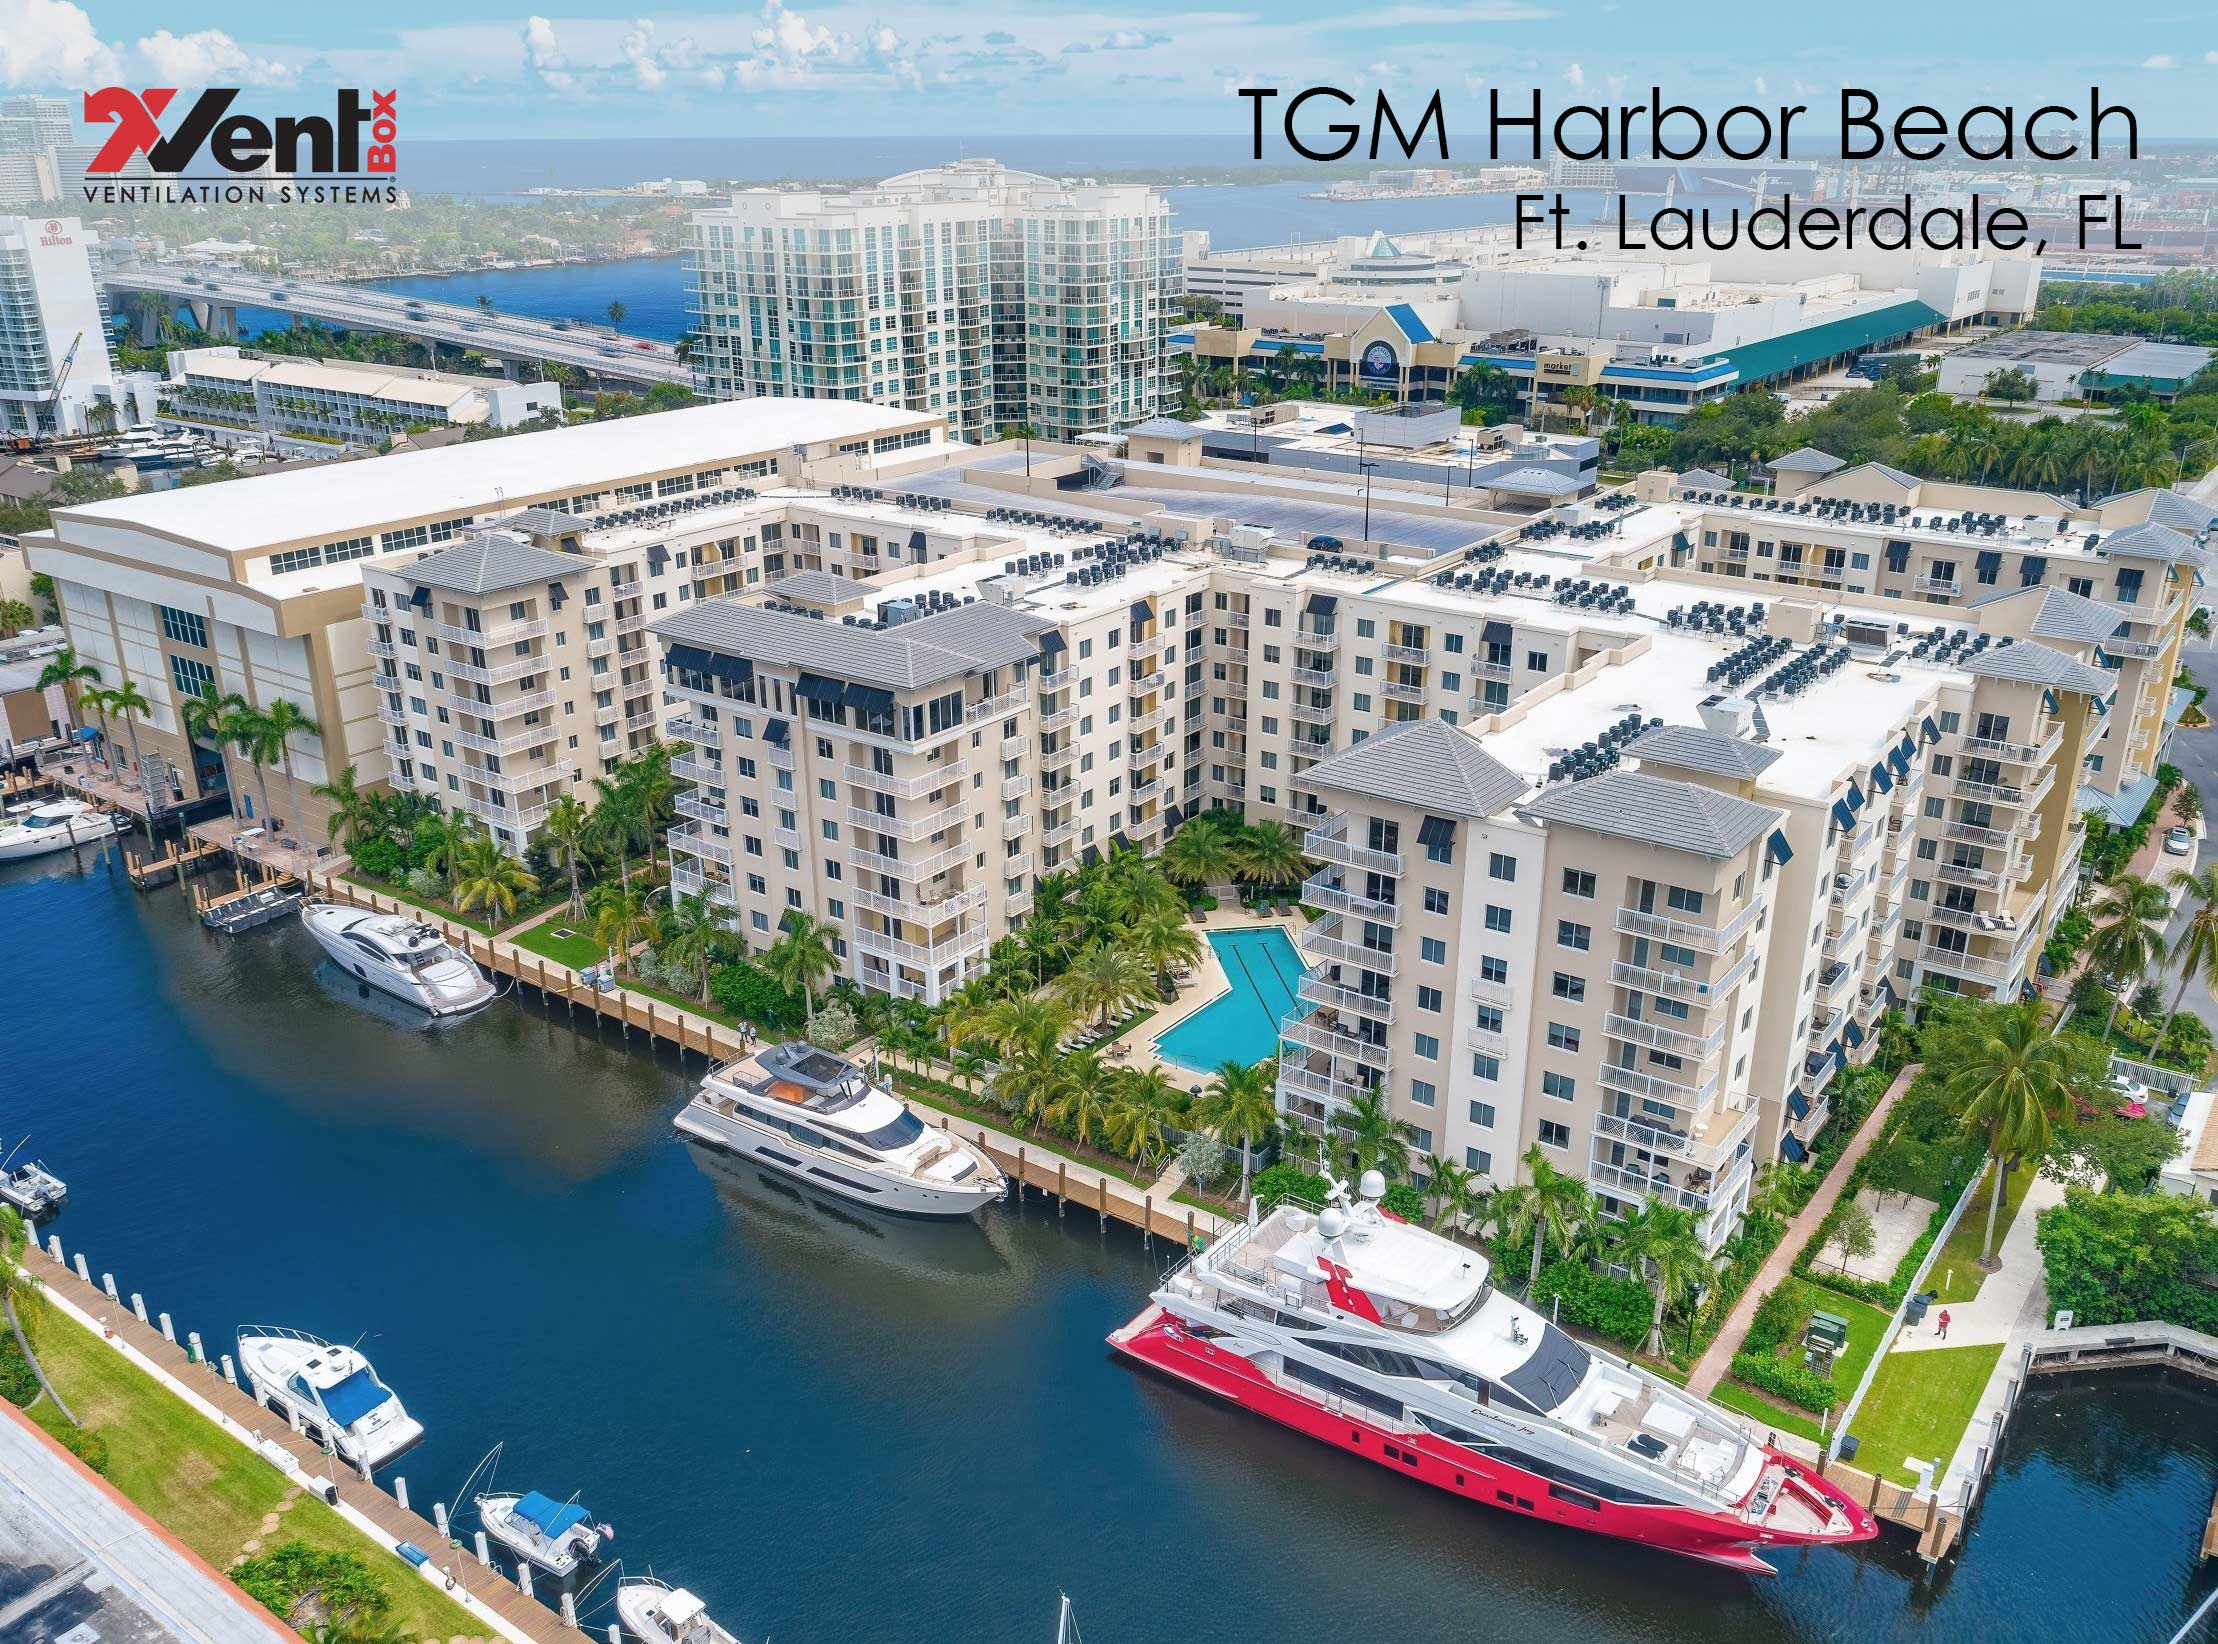 TGM Harbor Beach